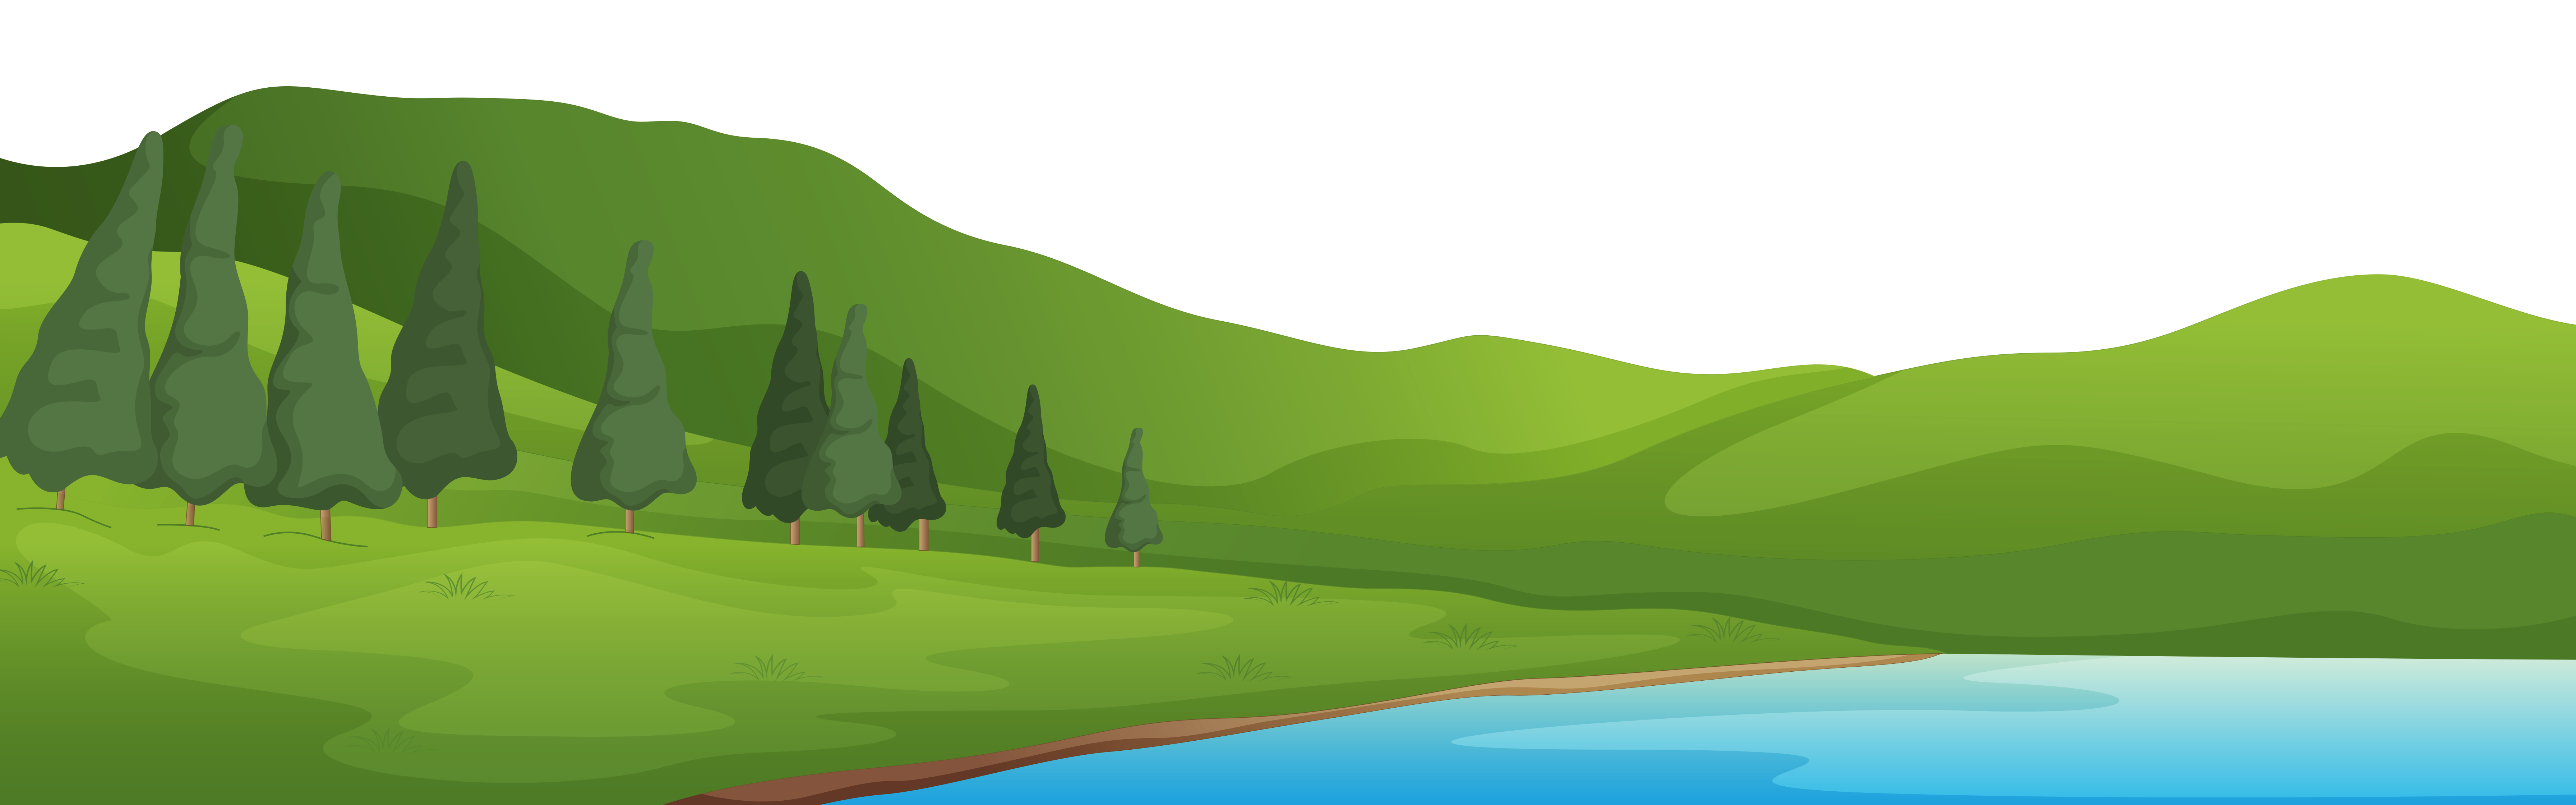 clipart road side view